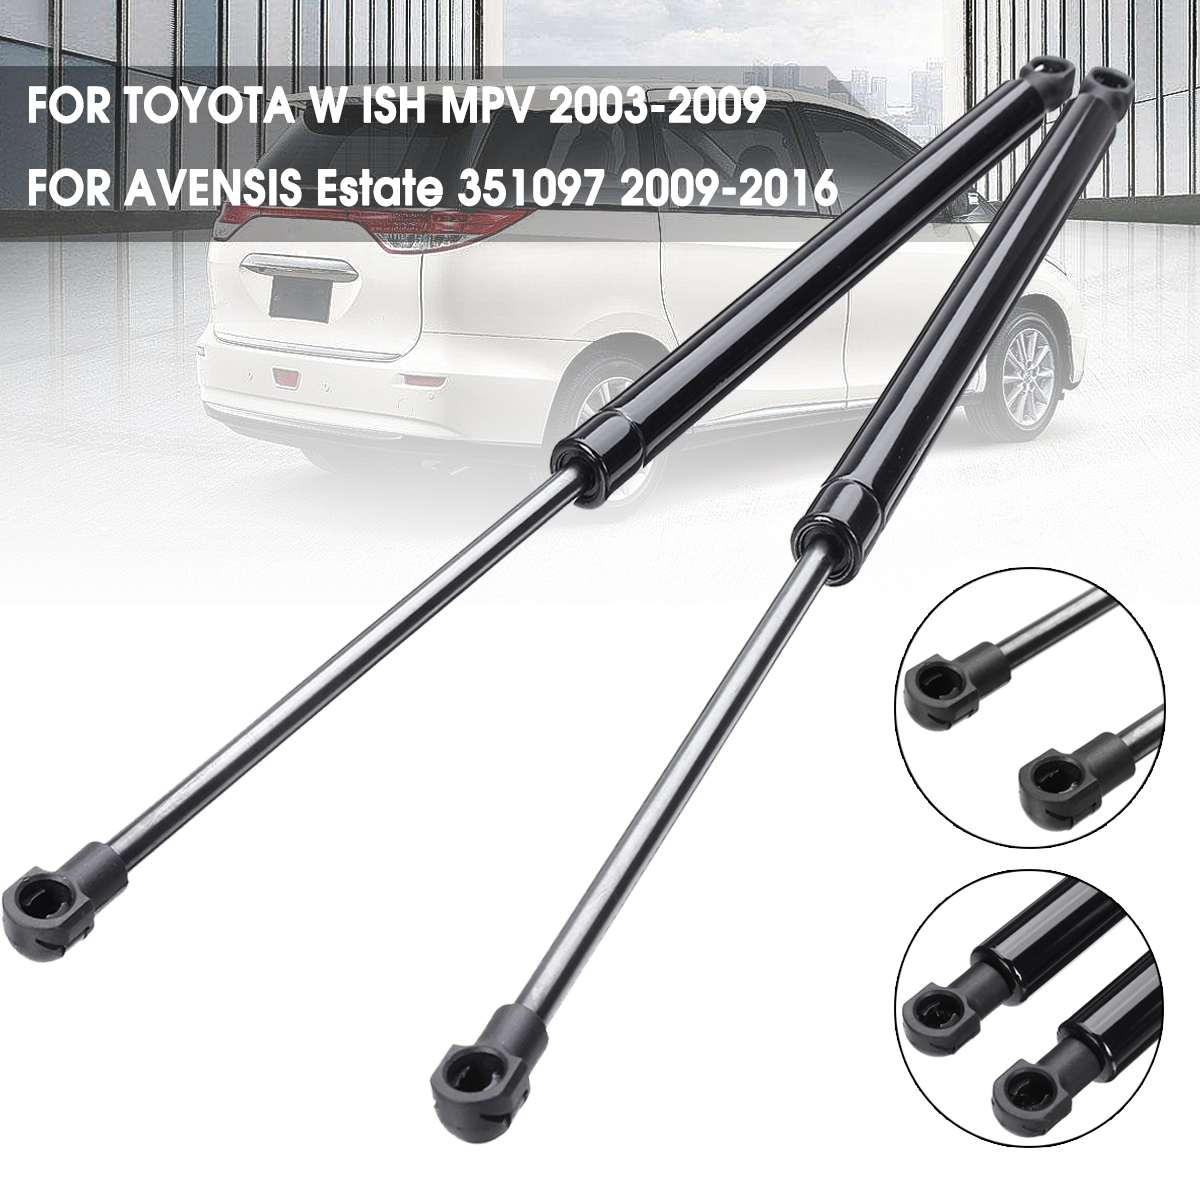 2pcs Car Rear Trunk Lift Supports Gas Struts Shocks 351097 for TOYOTA for WISH MPV AVENSIS Estate 2009-20162pcs Car Rear Trunk Lift Supports Gas Struts Shocks 351097 for TOYOTA for WISH MPV AVENSIS Estate 2009-2016